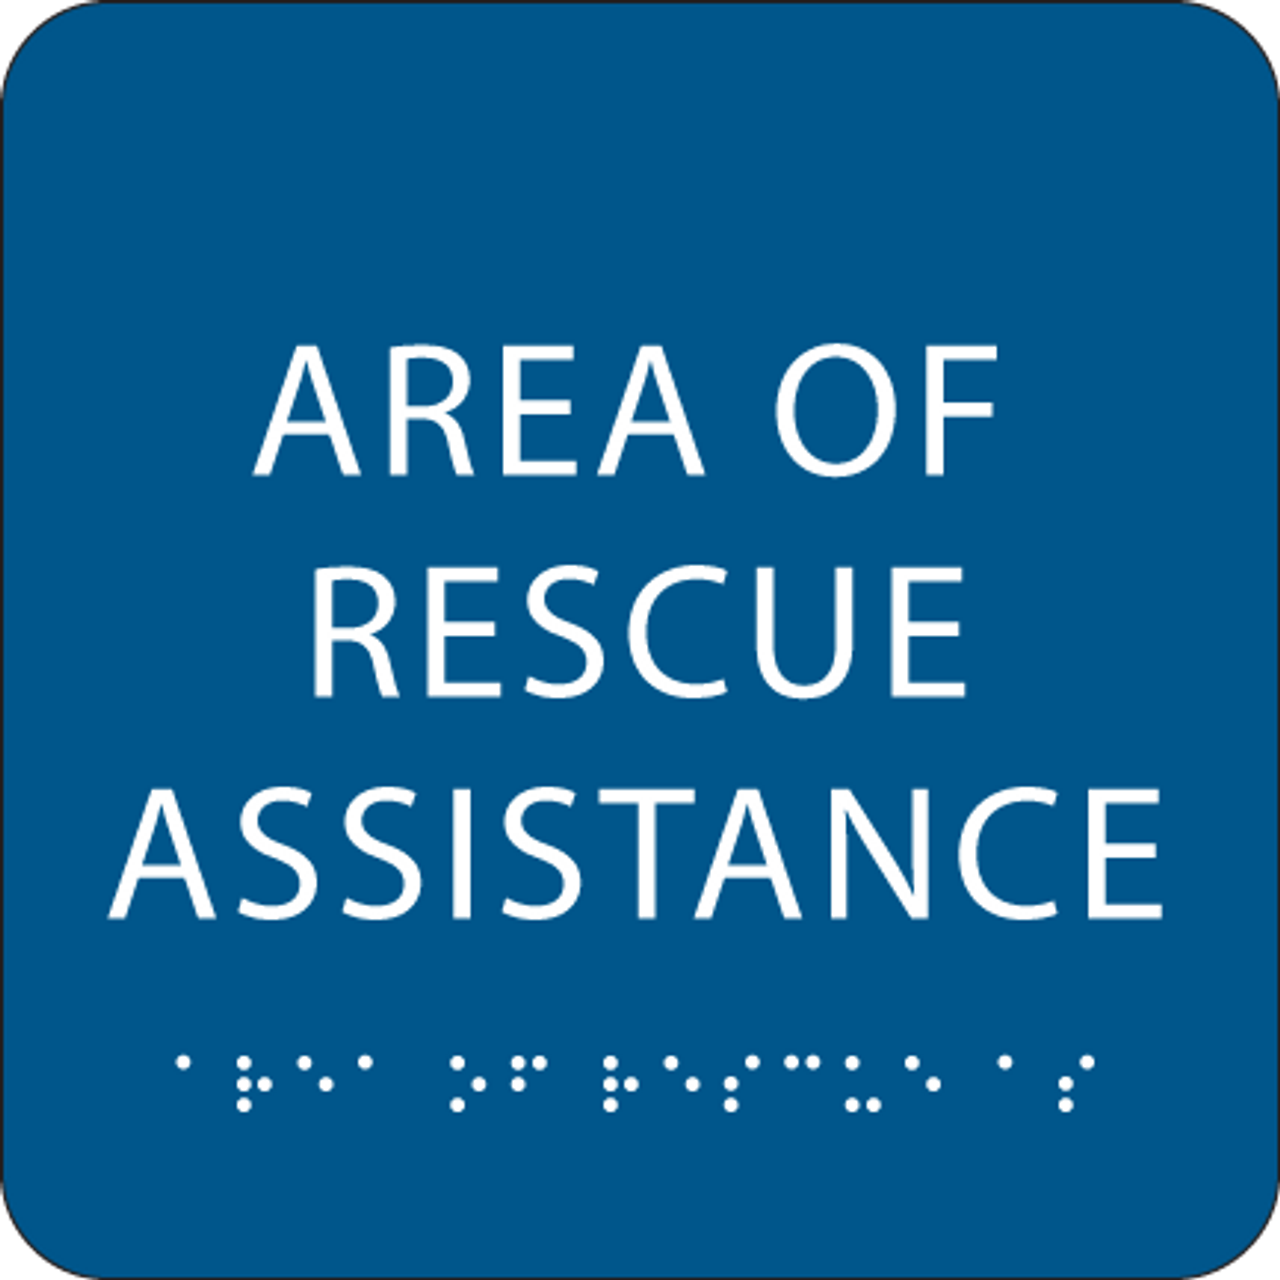 Blue Area of Rescue Assistance ADA Sign